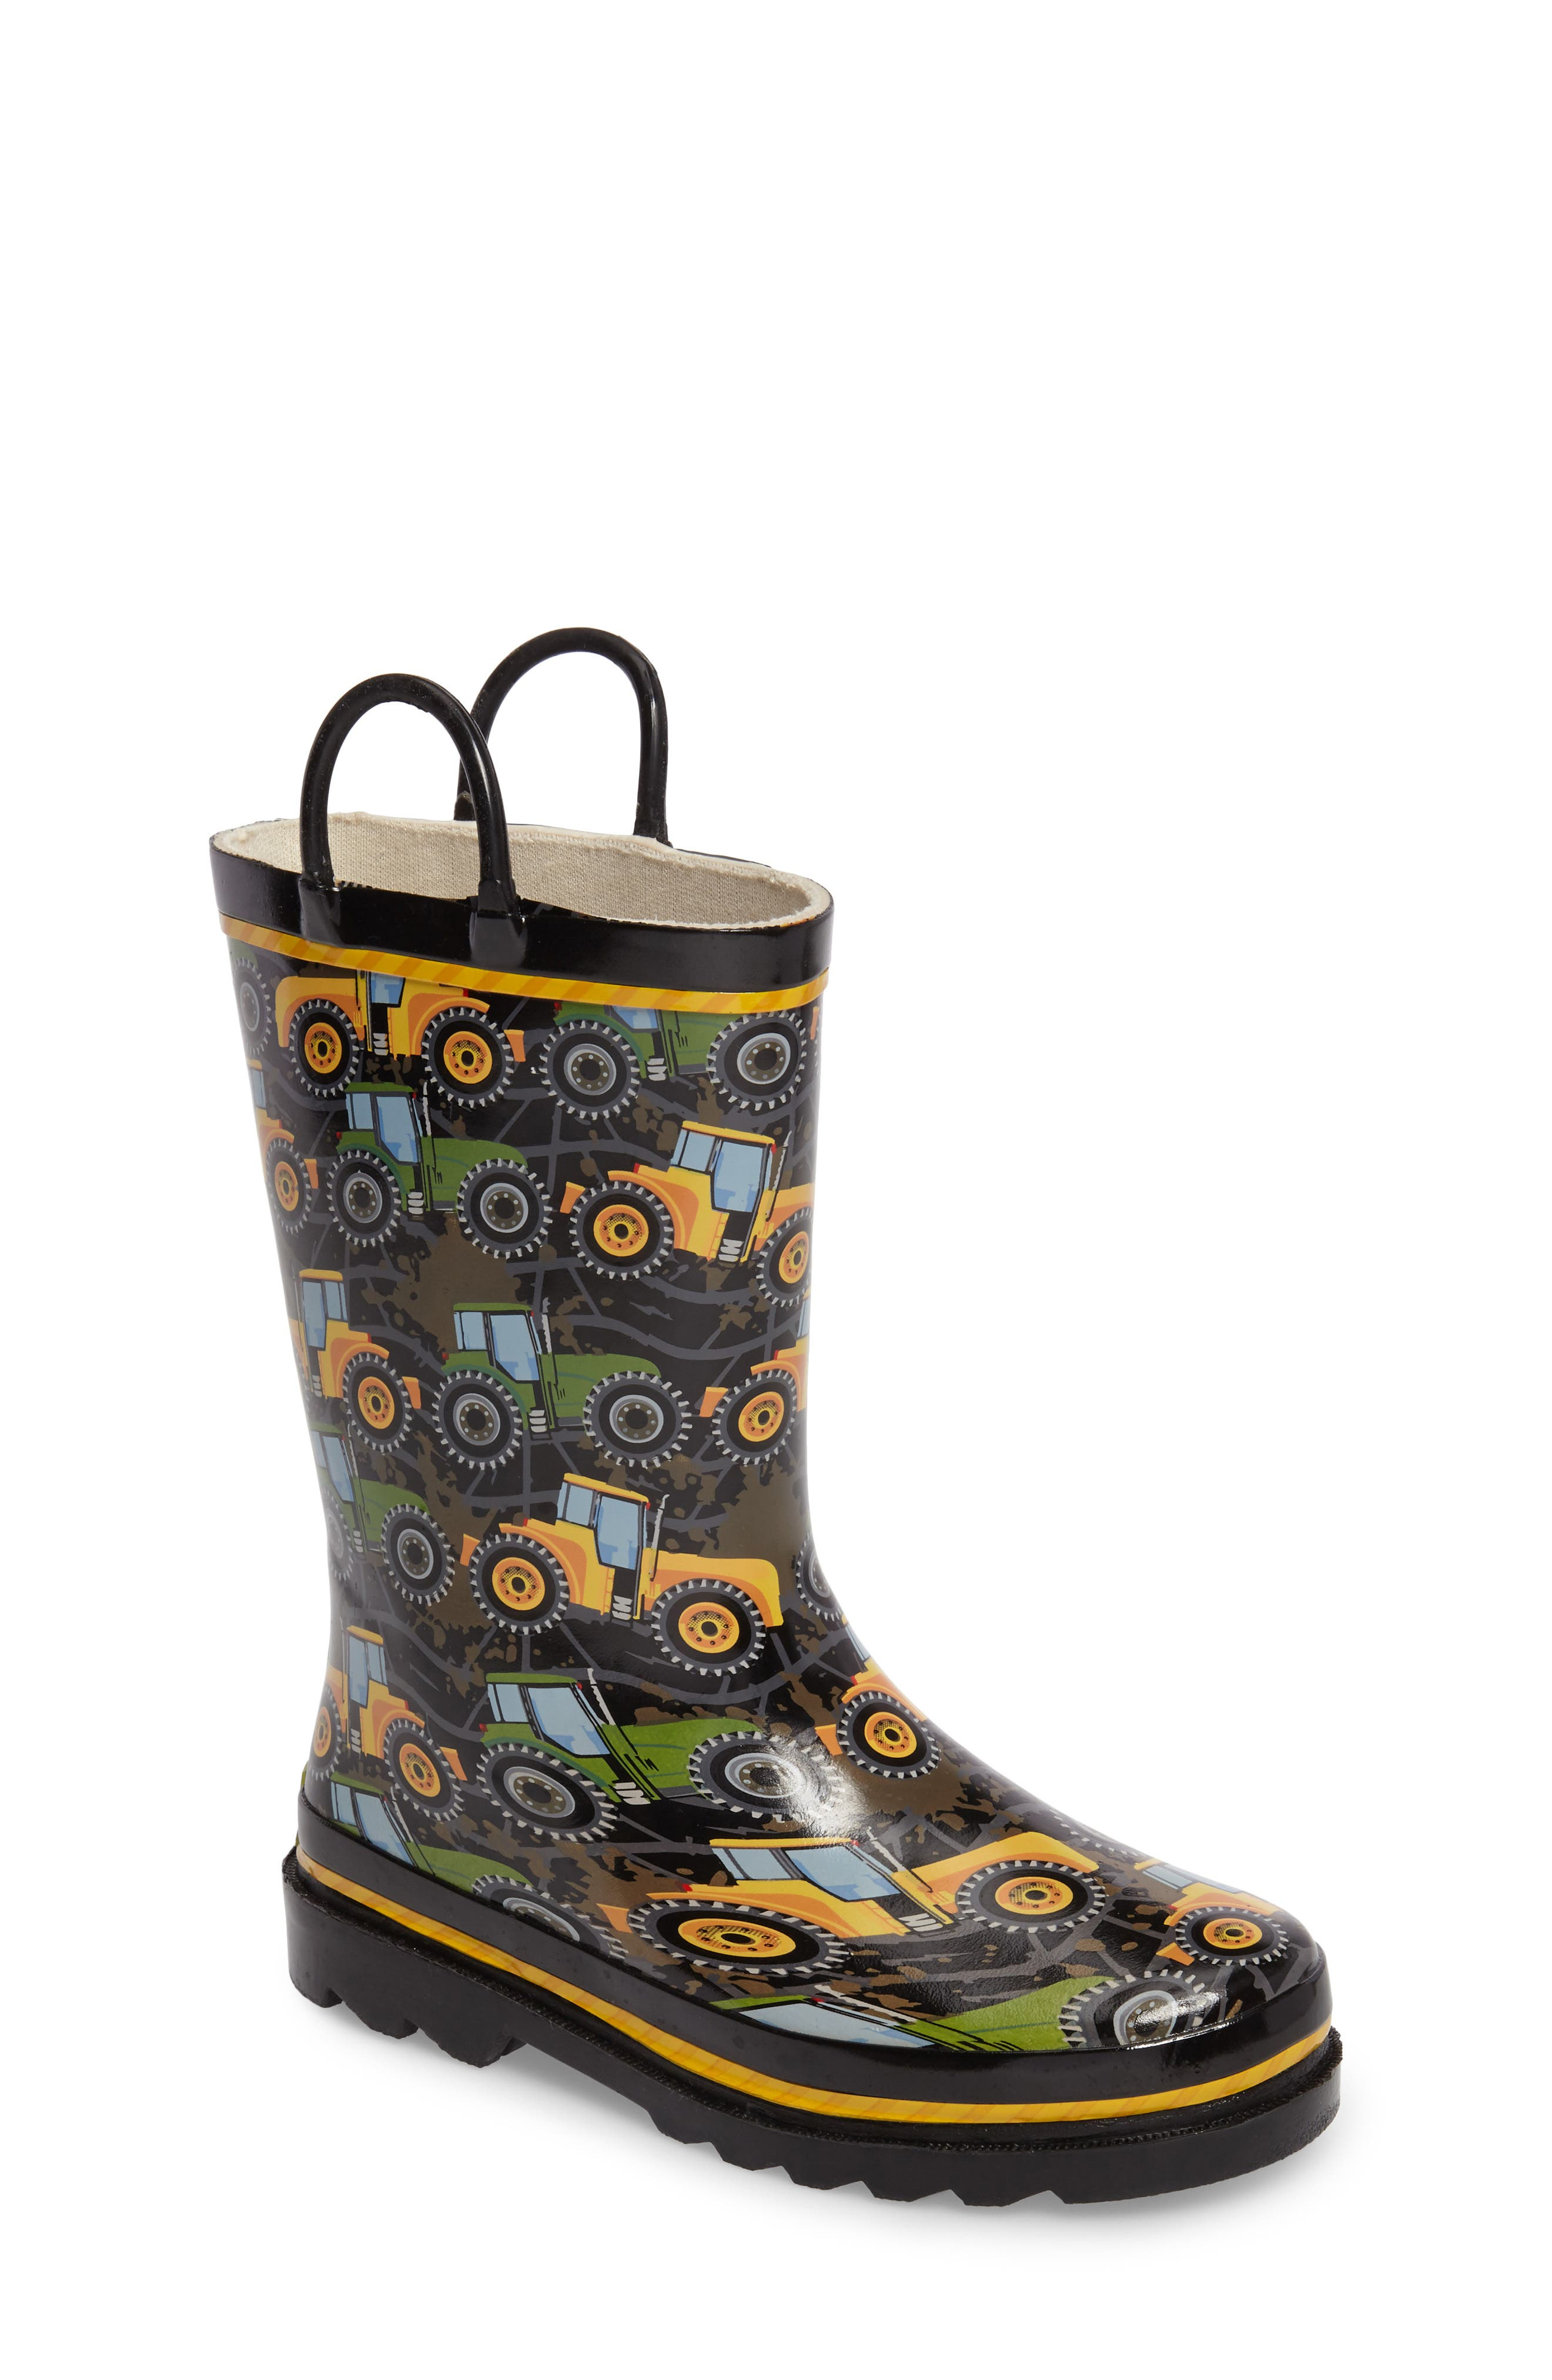 Tractor Tough Rain Boot,                         Main,                         color, Black